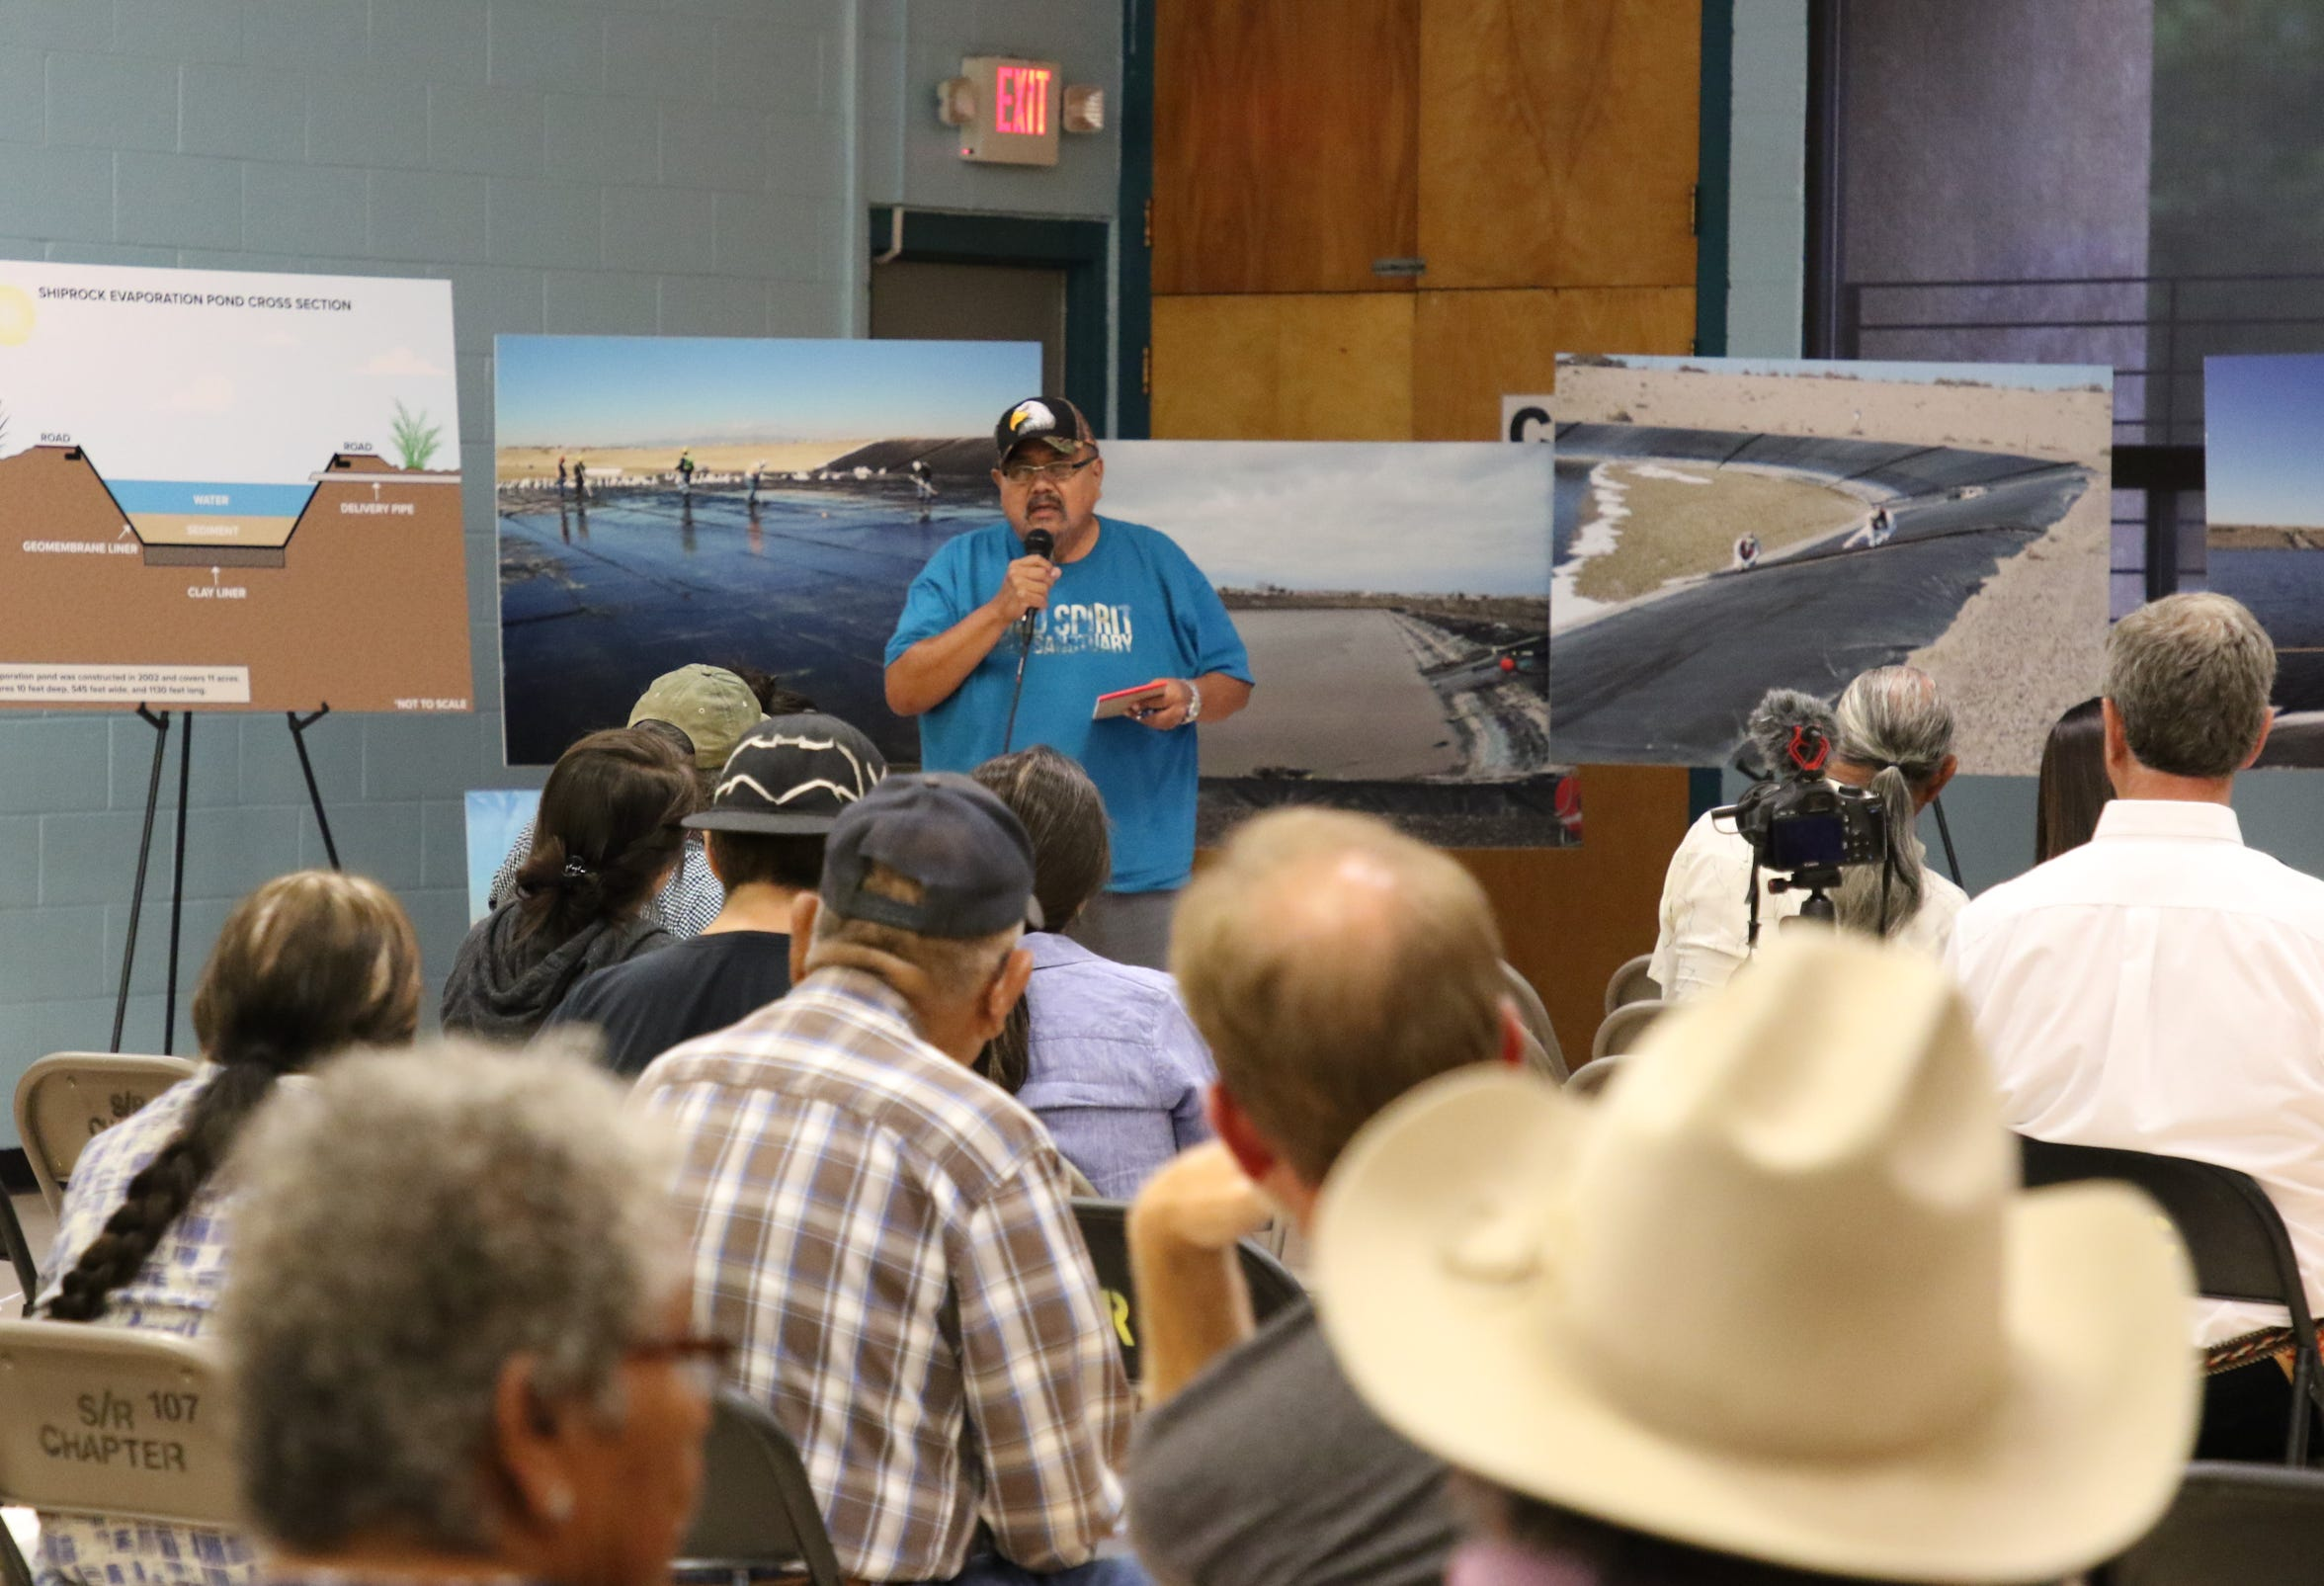 Perry Charley, a member of the Diné Uranium Remediation Advisory Commission, comments on Aug. 22 about proposals presented by the U.S. Department of Energy's Office of Legacy Management for the evaporation pond in Shiprock.